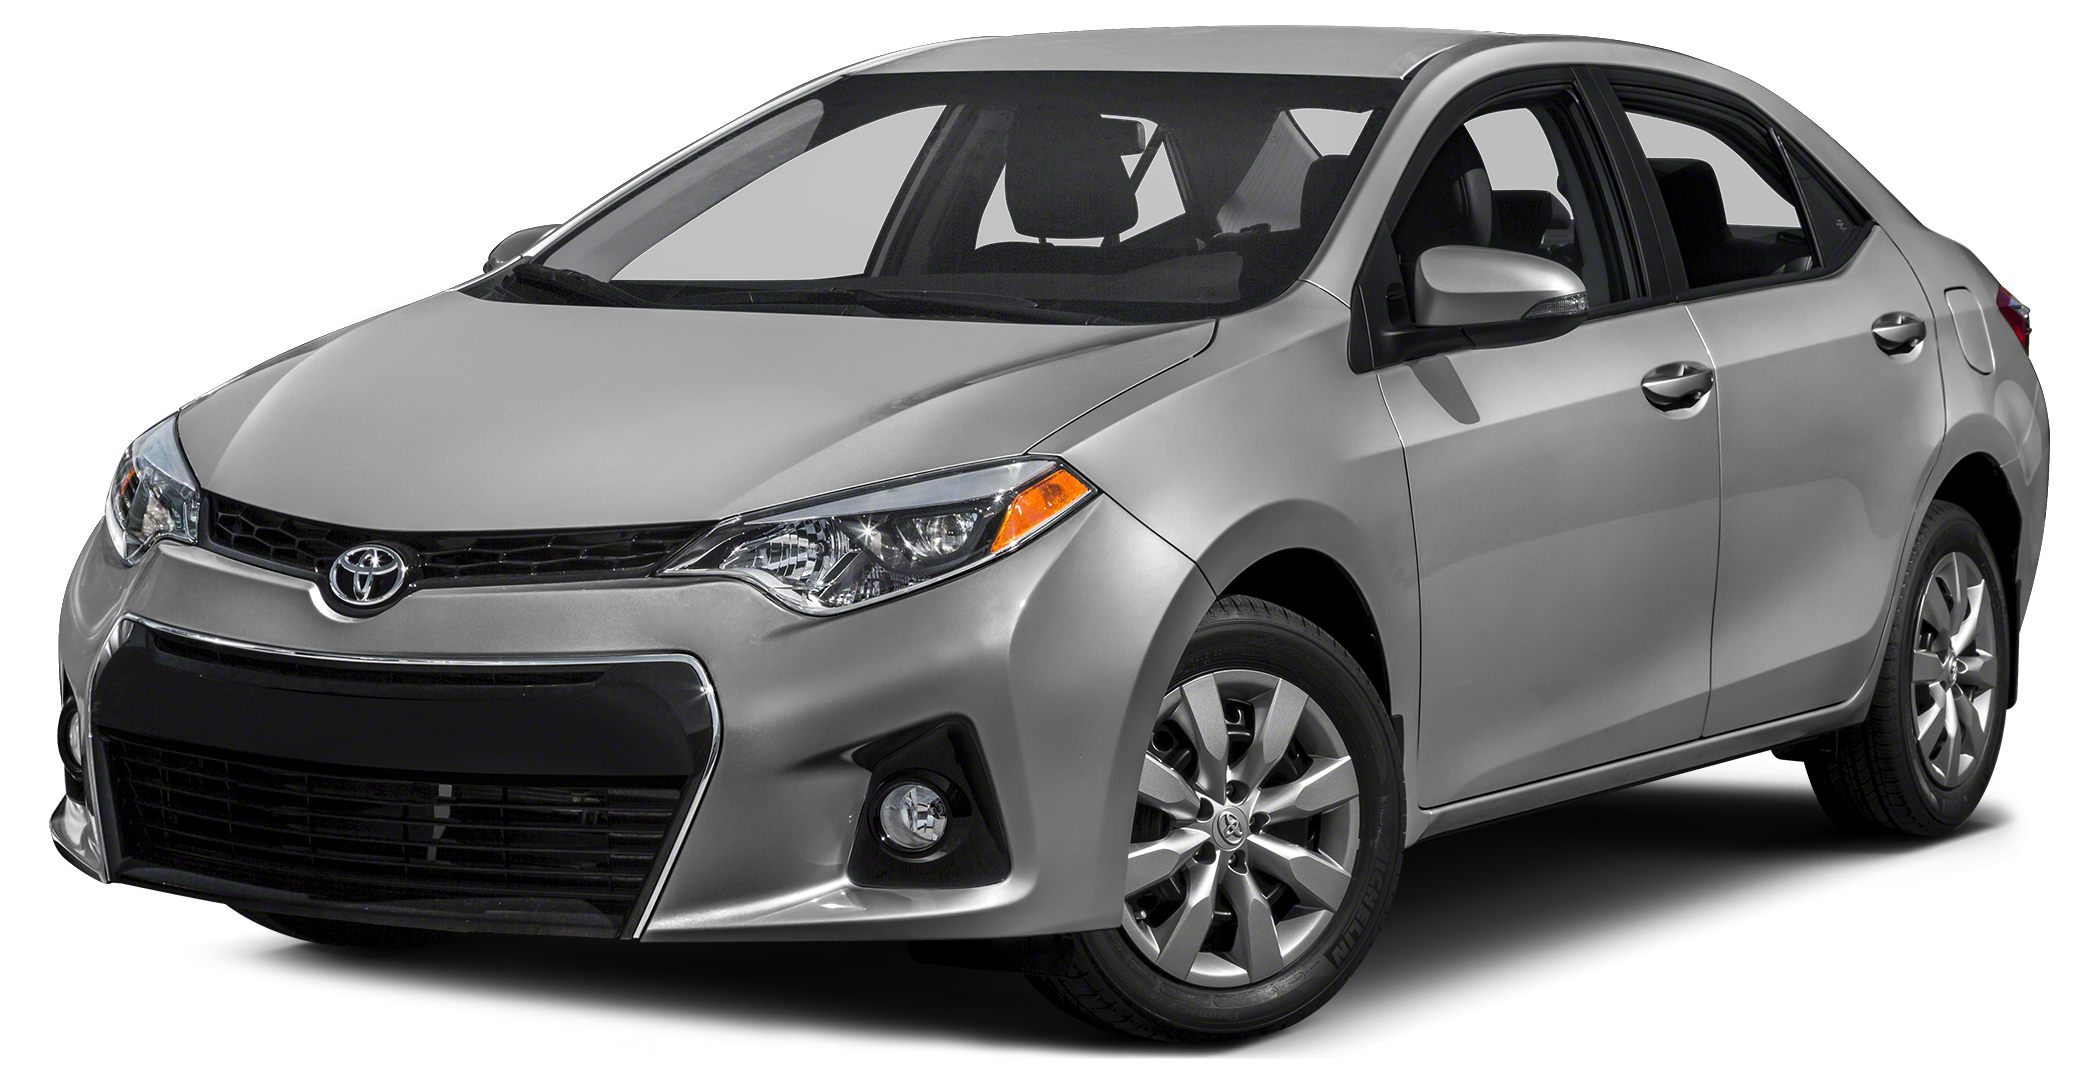 2016 Toyota Corolla S Plus S Plus trim CLASSIC SILVER METALLIC exterior and BLACK interior CARFA